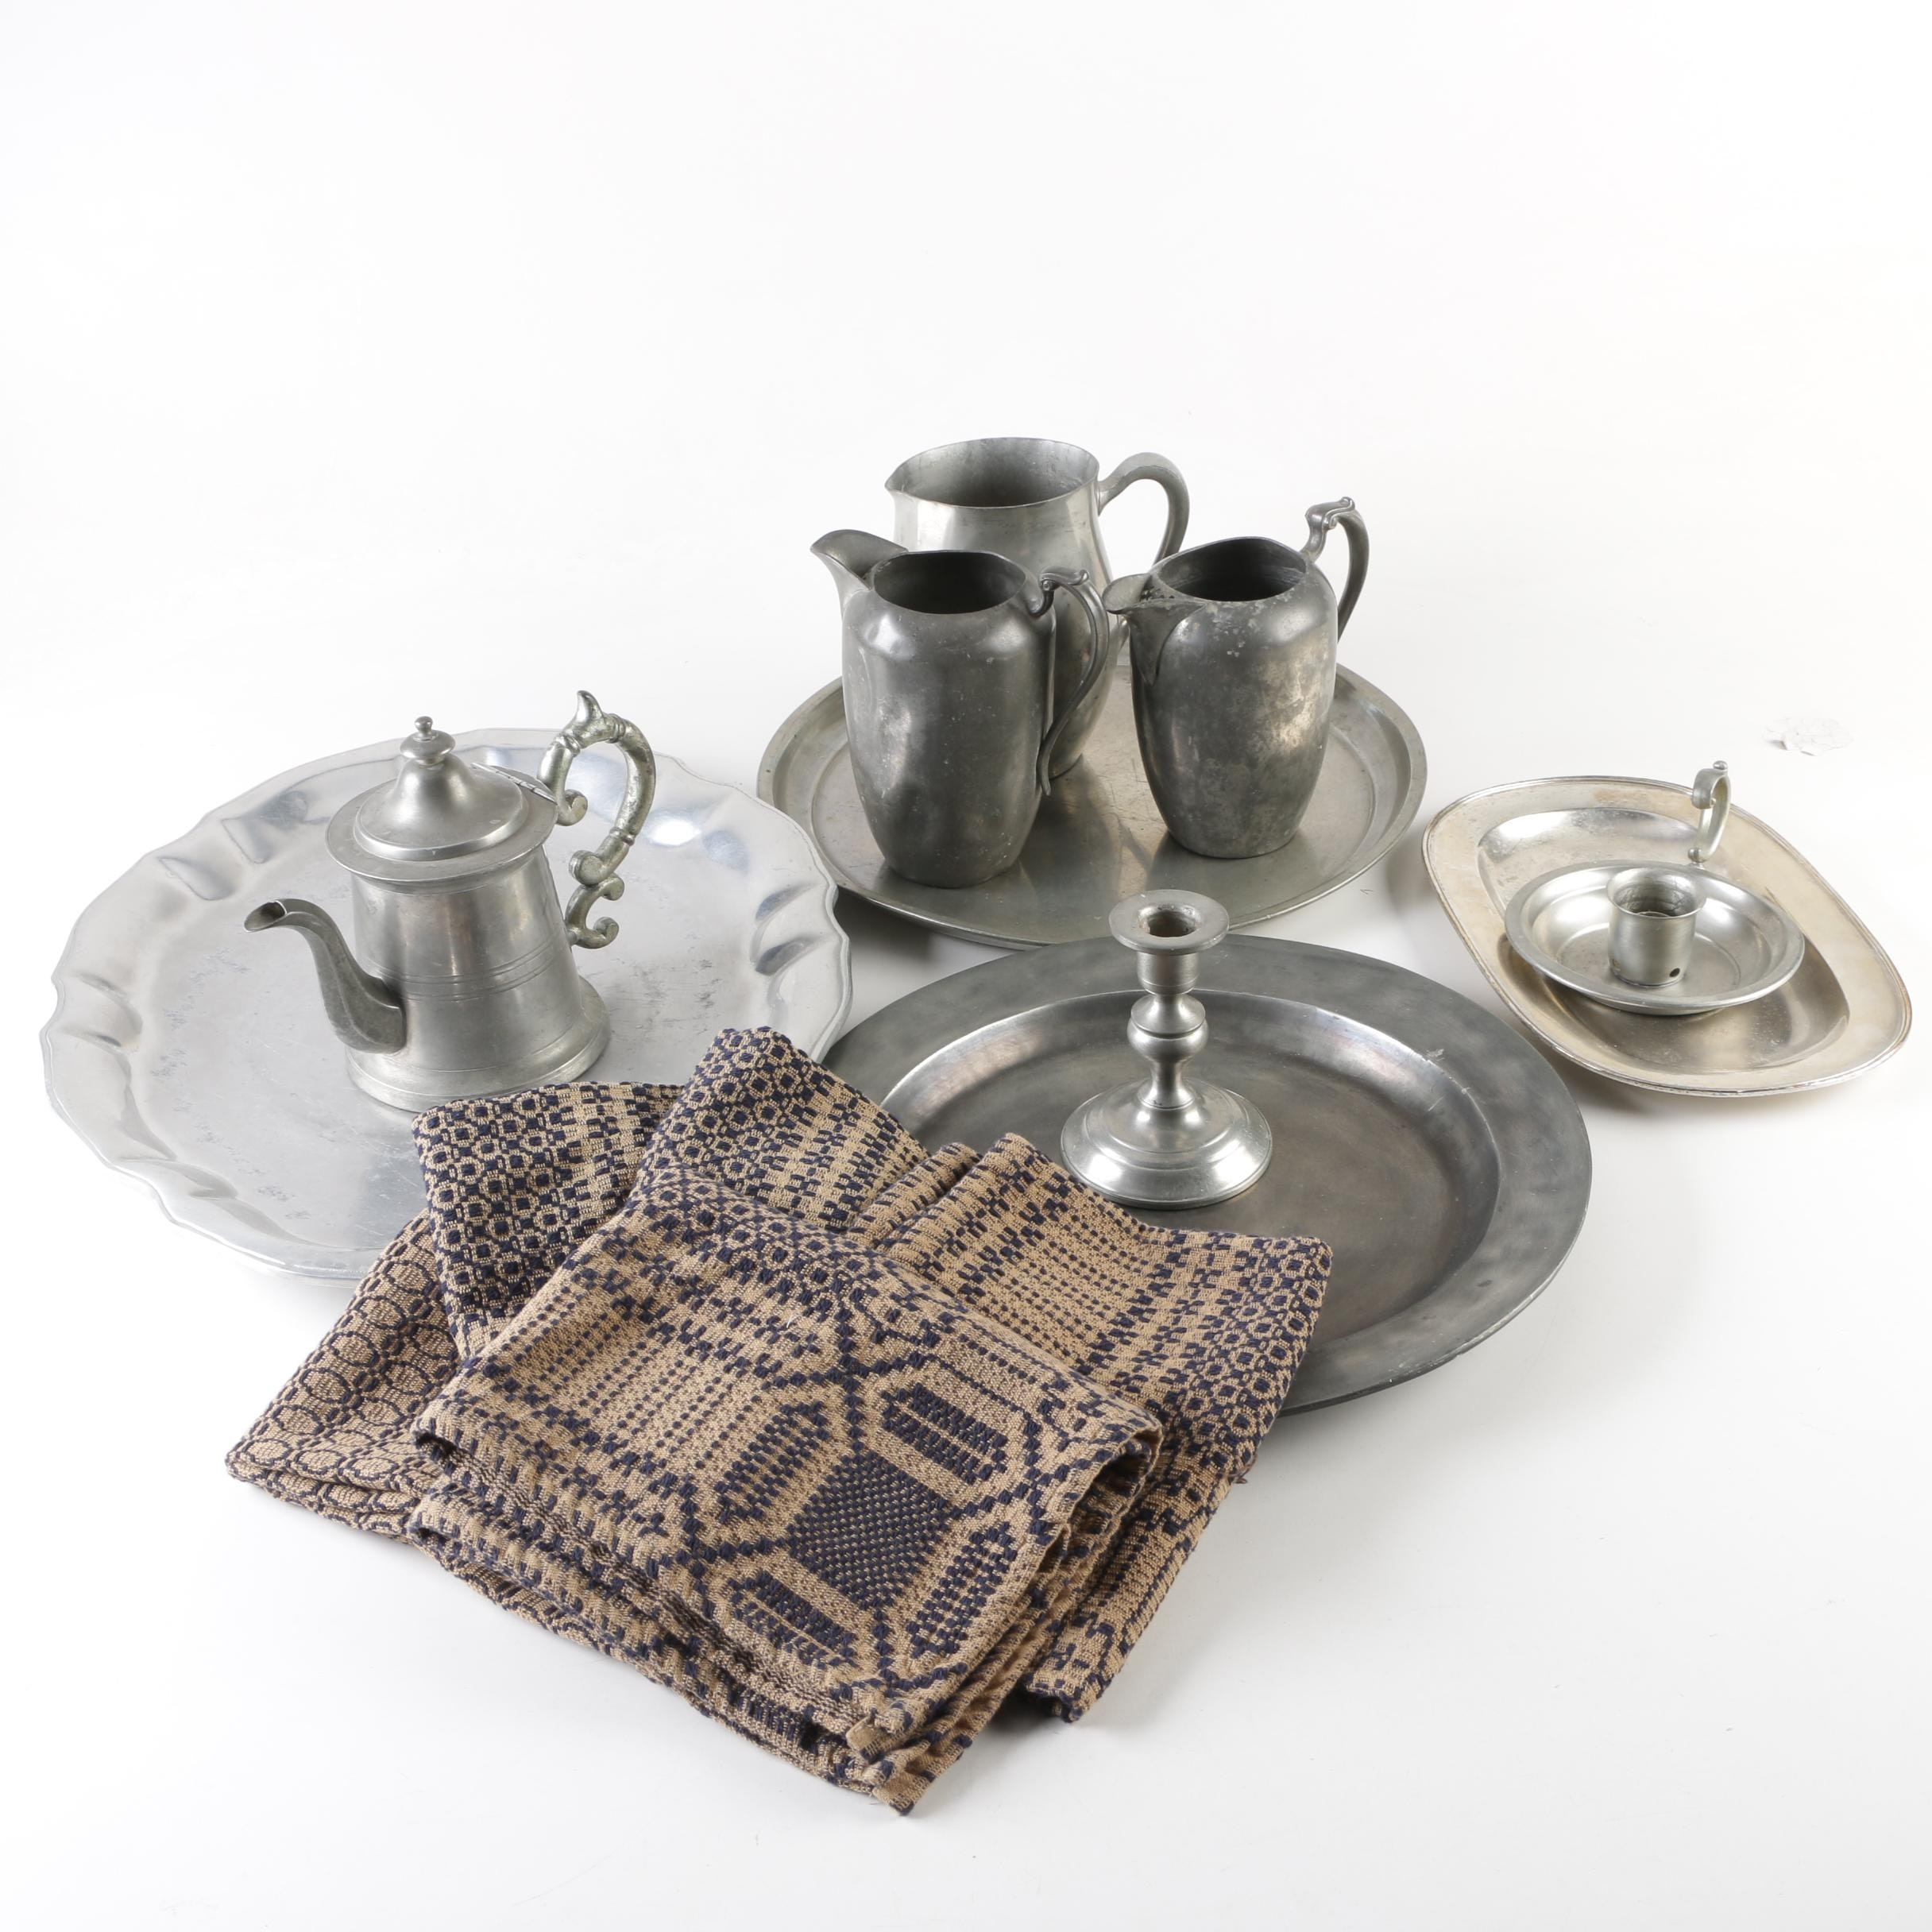 Pewter and Metal Tableware featuring Woodbury Pewterers and Wilton, Mid-Century